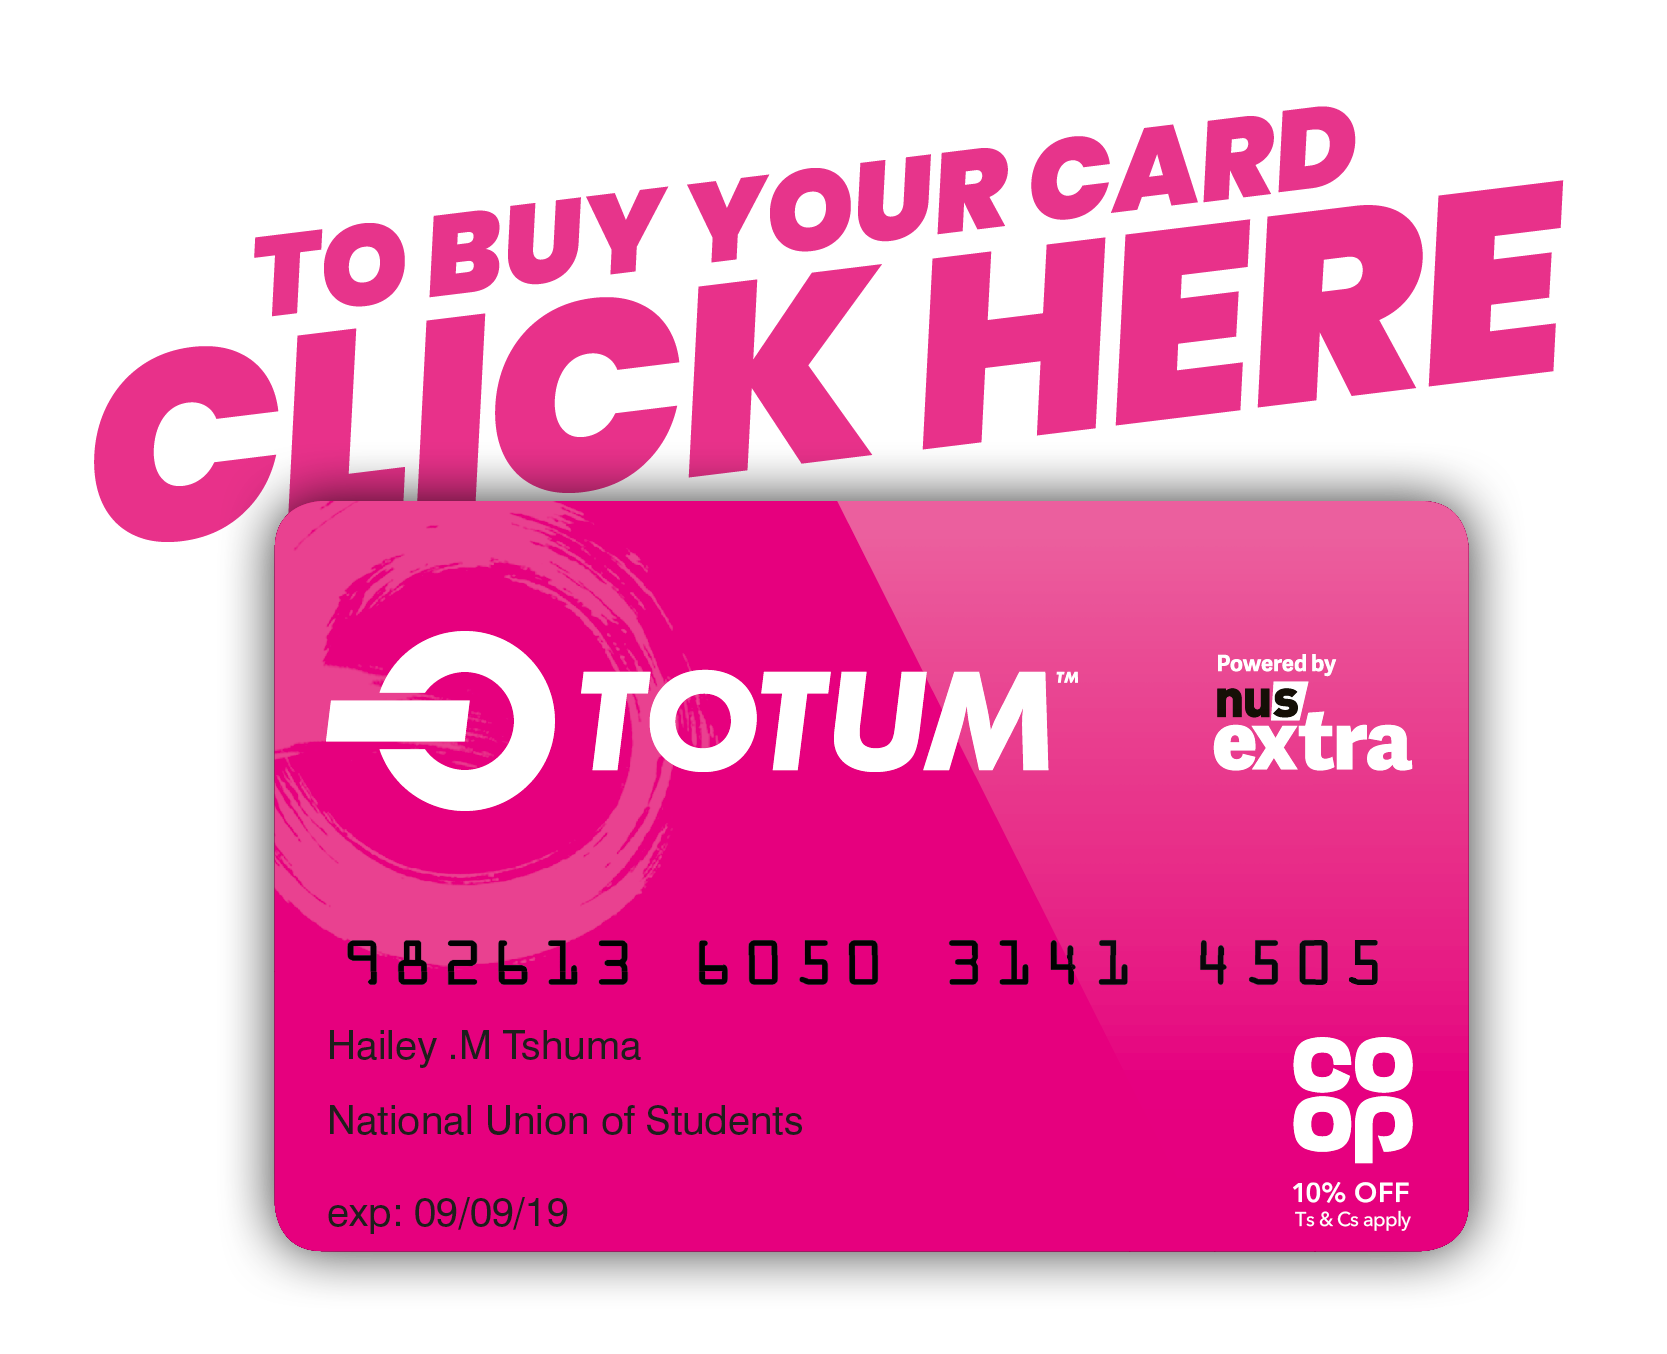 TOTUM Local Offers @ University of Central Lancashire